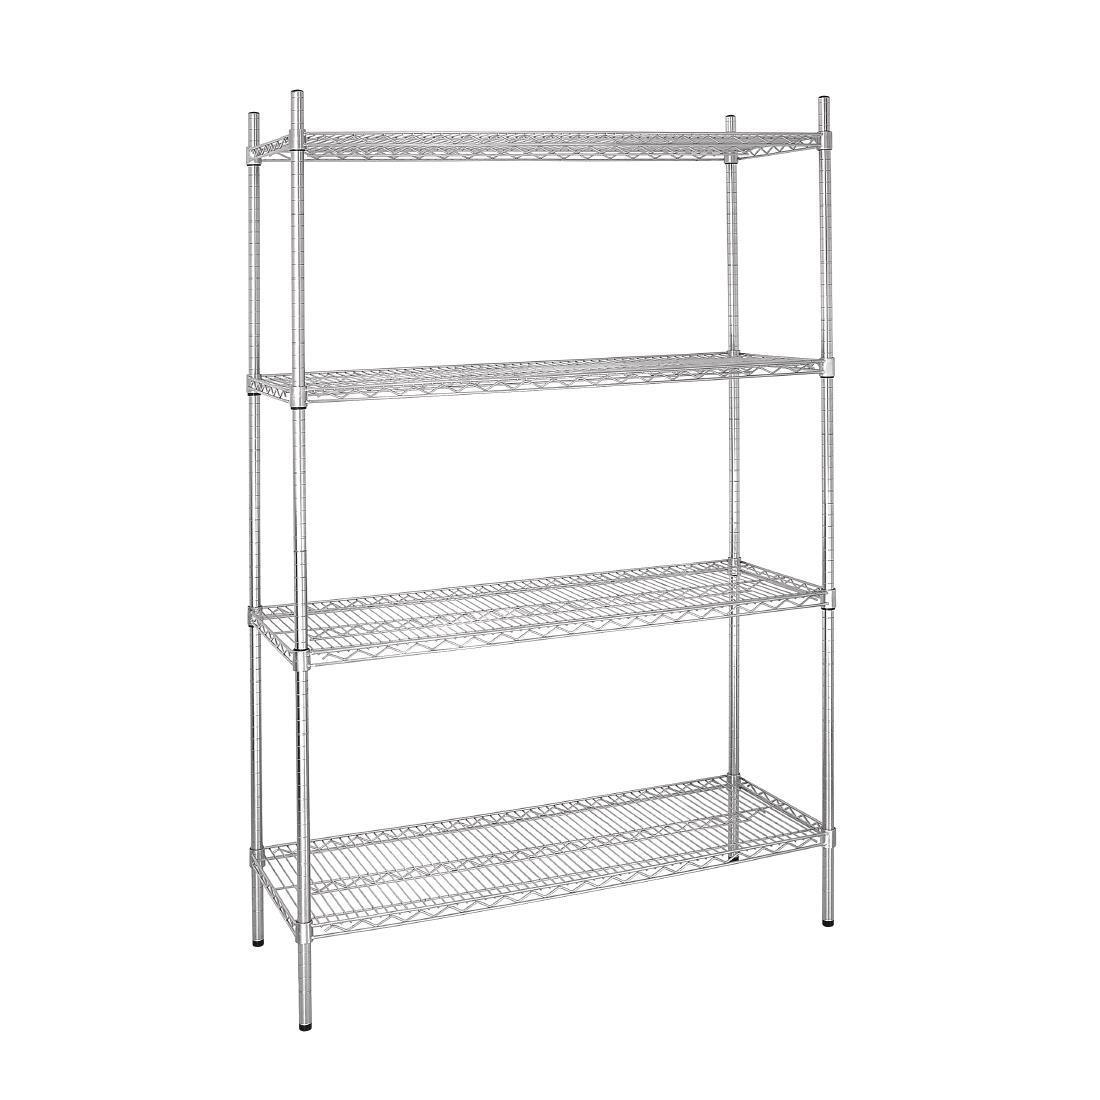 Vogue 4 Tier Wire Shelving Kit 1220x460mm - L928